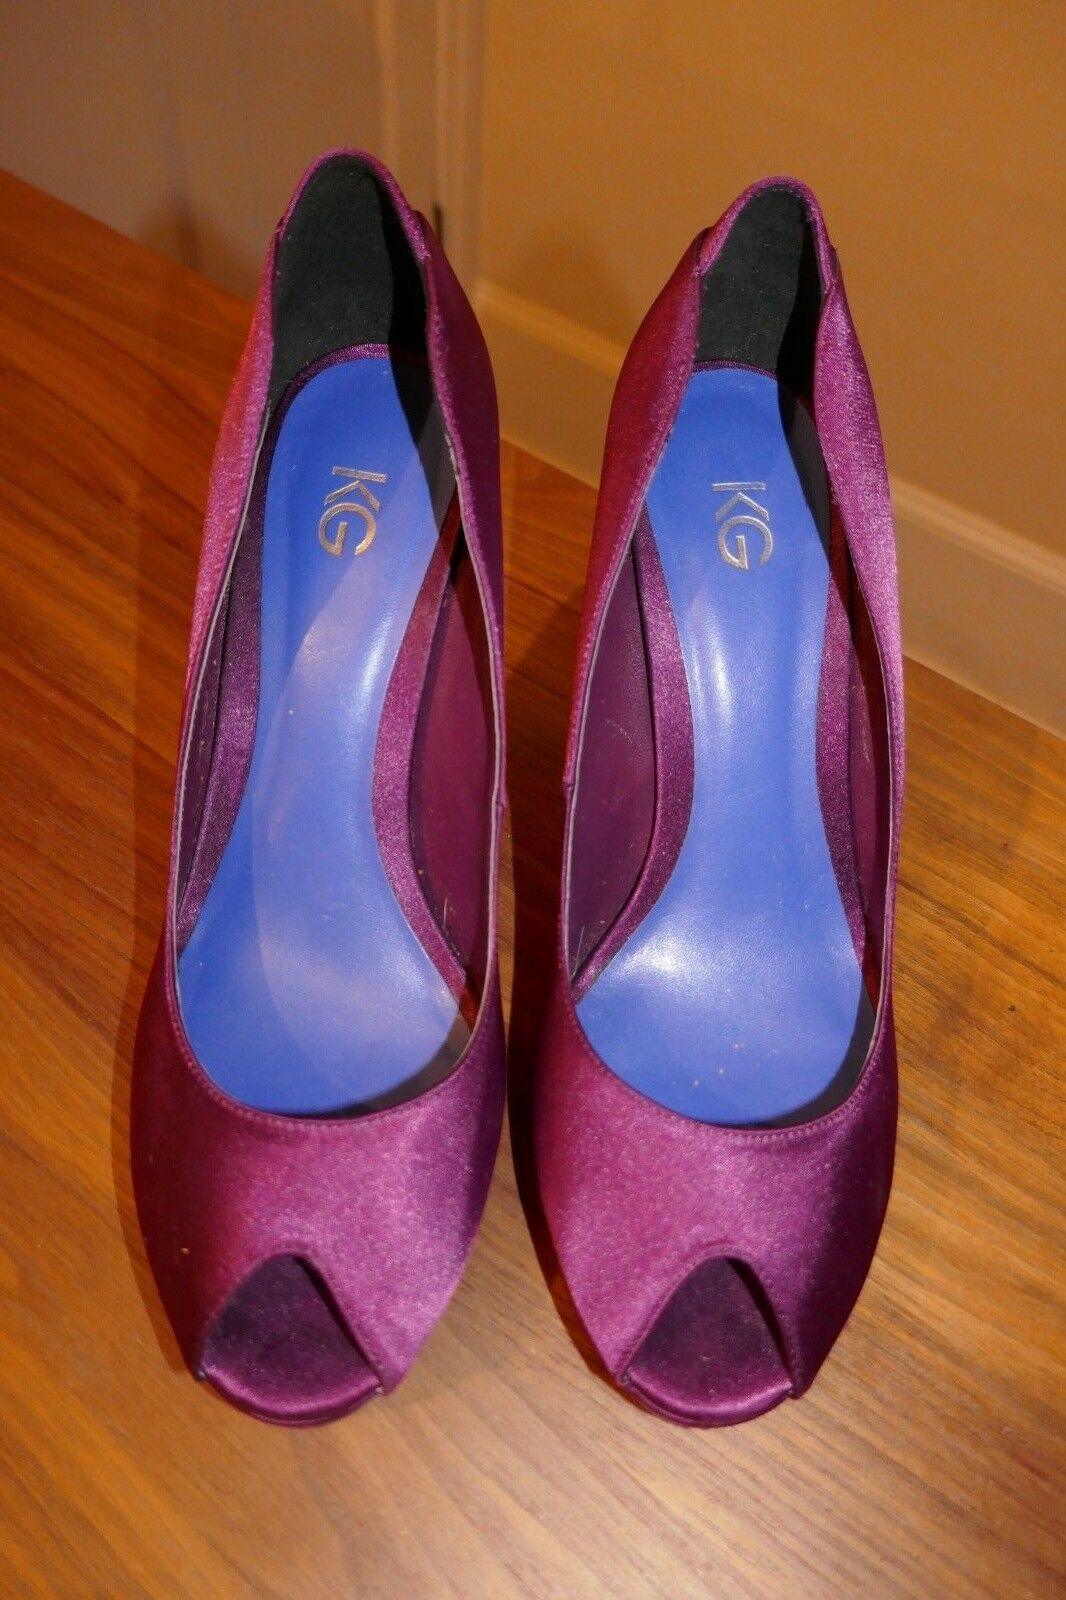 Ladies Miss KG (Kurt Geiger) Purple High Heel Peep toe shoes Size 37